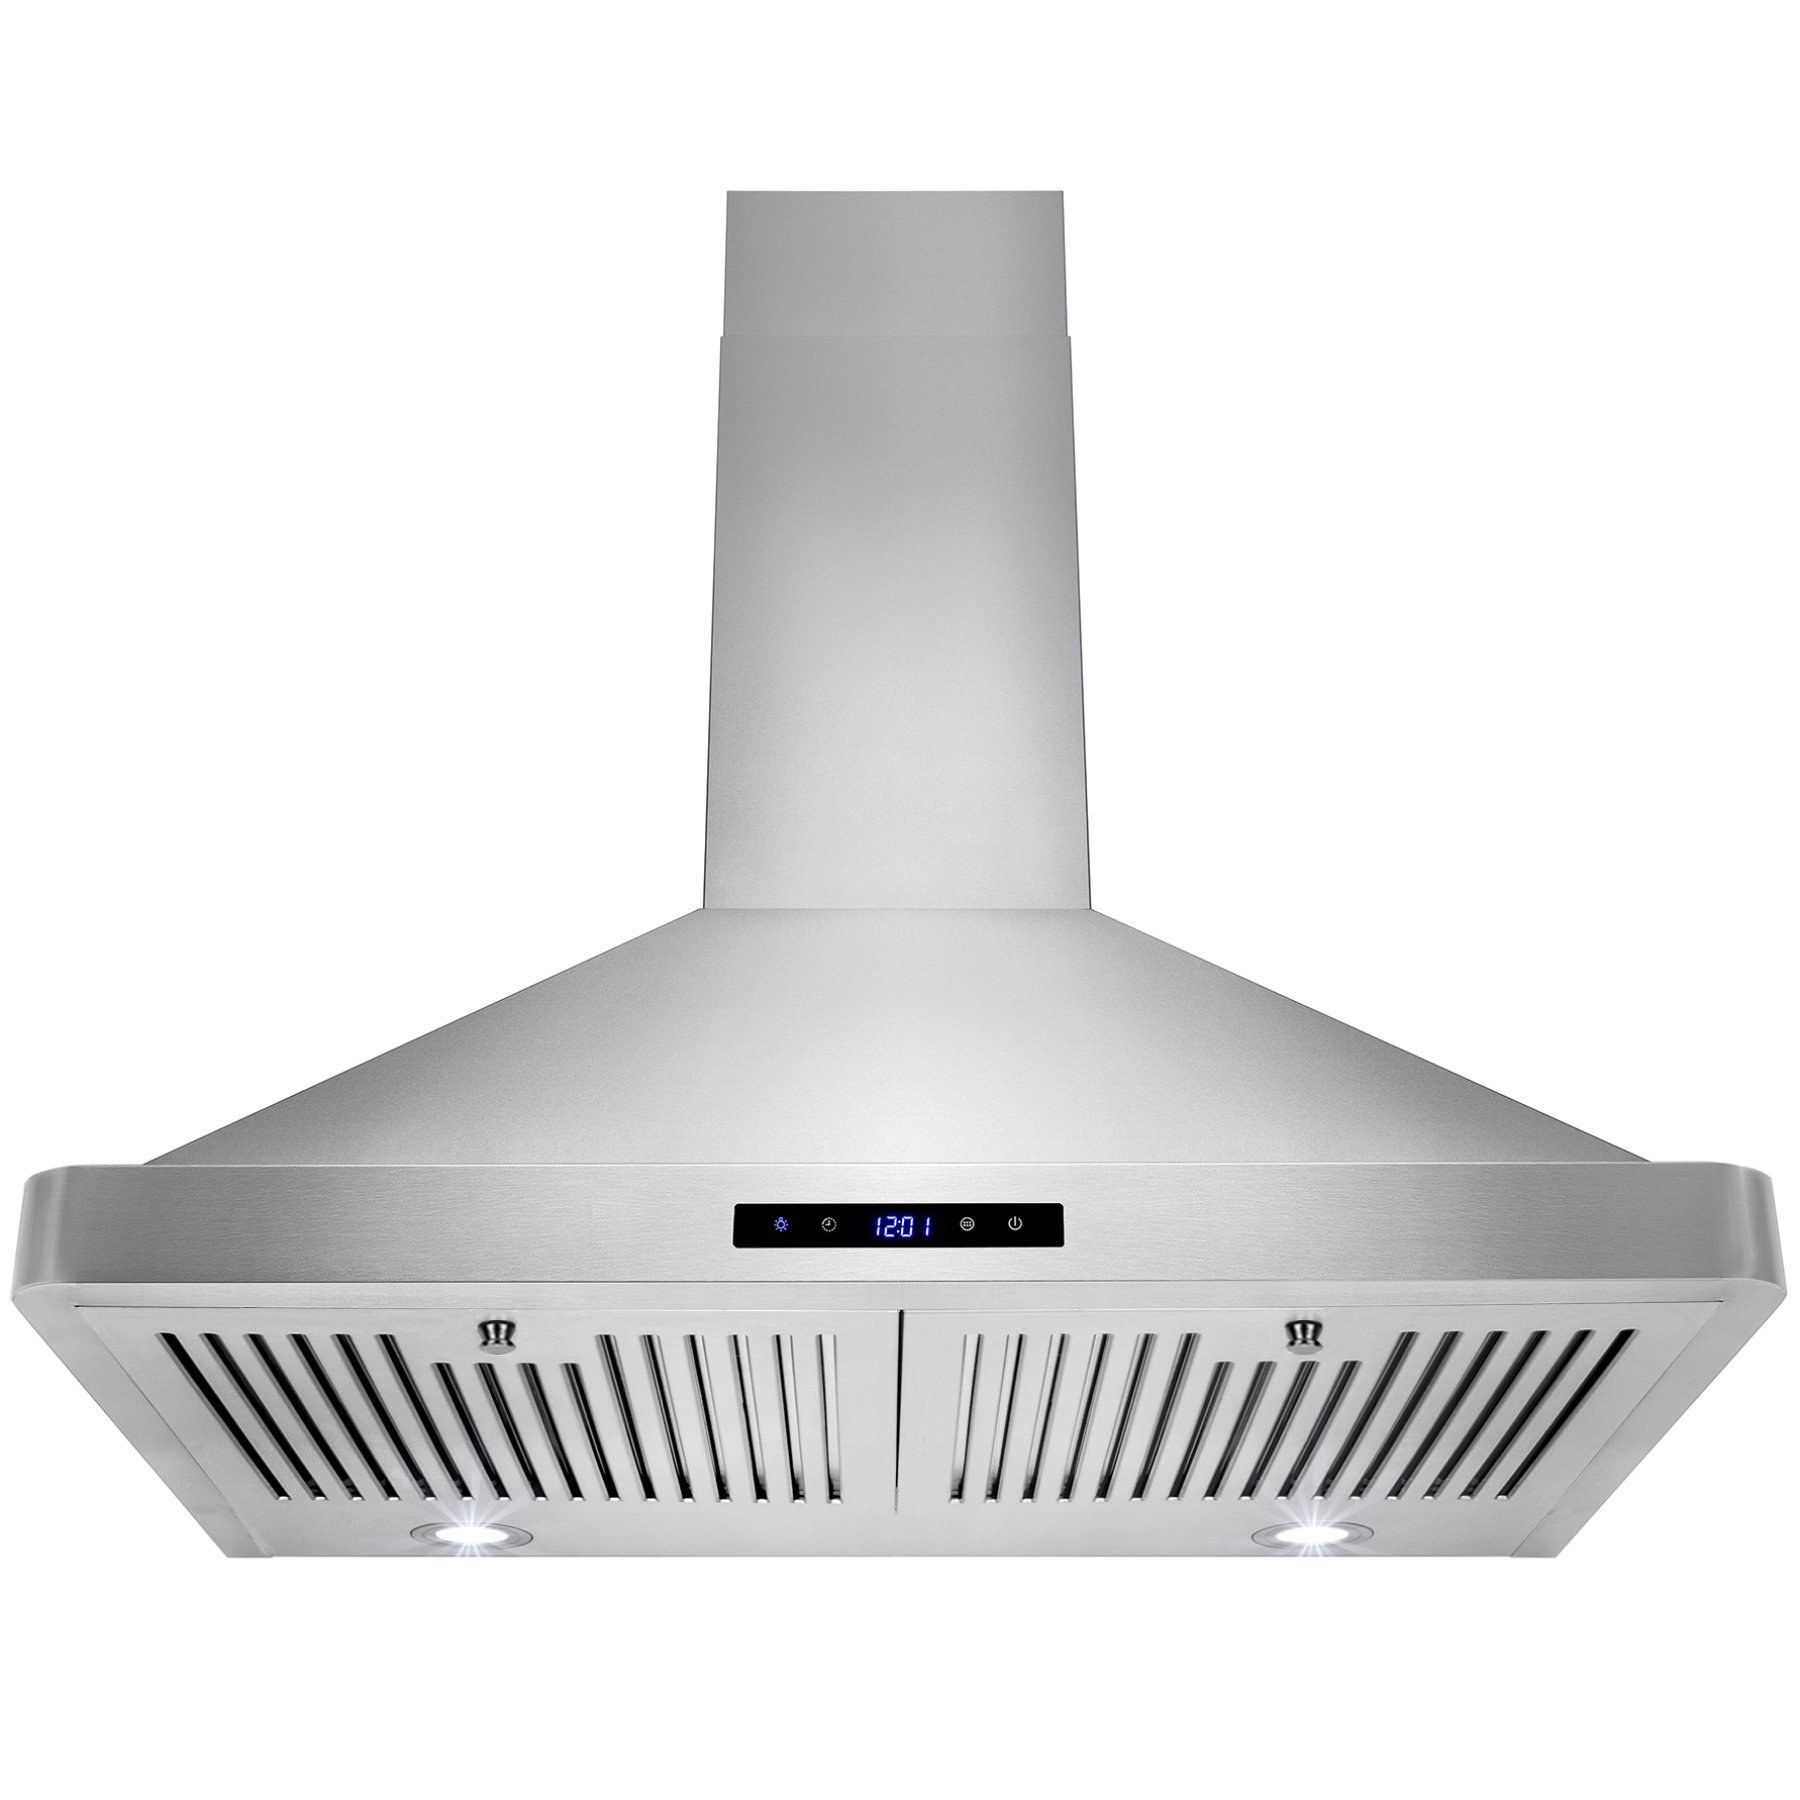 Golden Vantage 30'' Wall Mount LED Display Touch Control High Quality Stainless Steel/Tempered Glass Vent Ductless/Ducted Range Hood w/ Multi Layer Aluminum Mesh Grease Filter (30'' Stainless Steel)